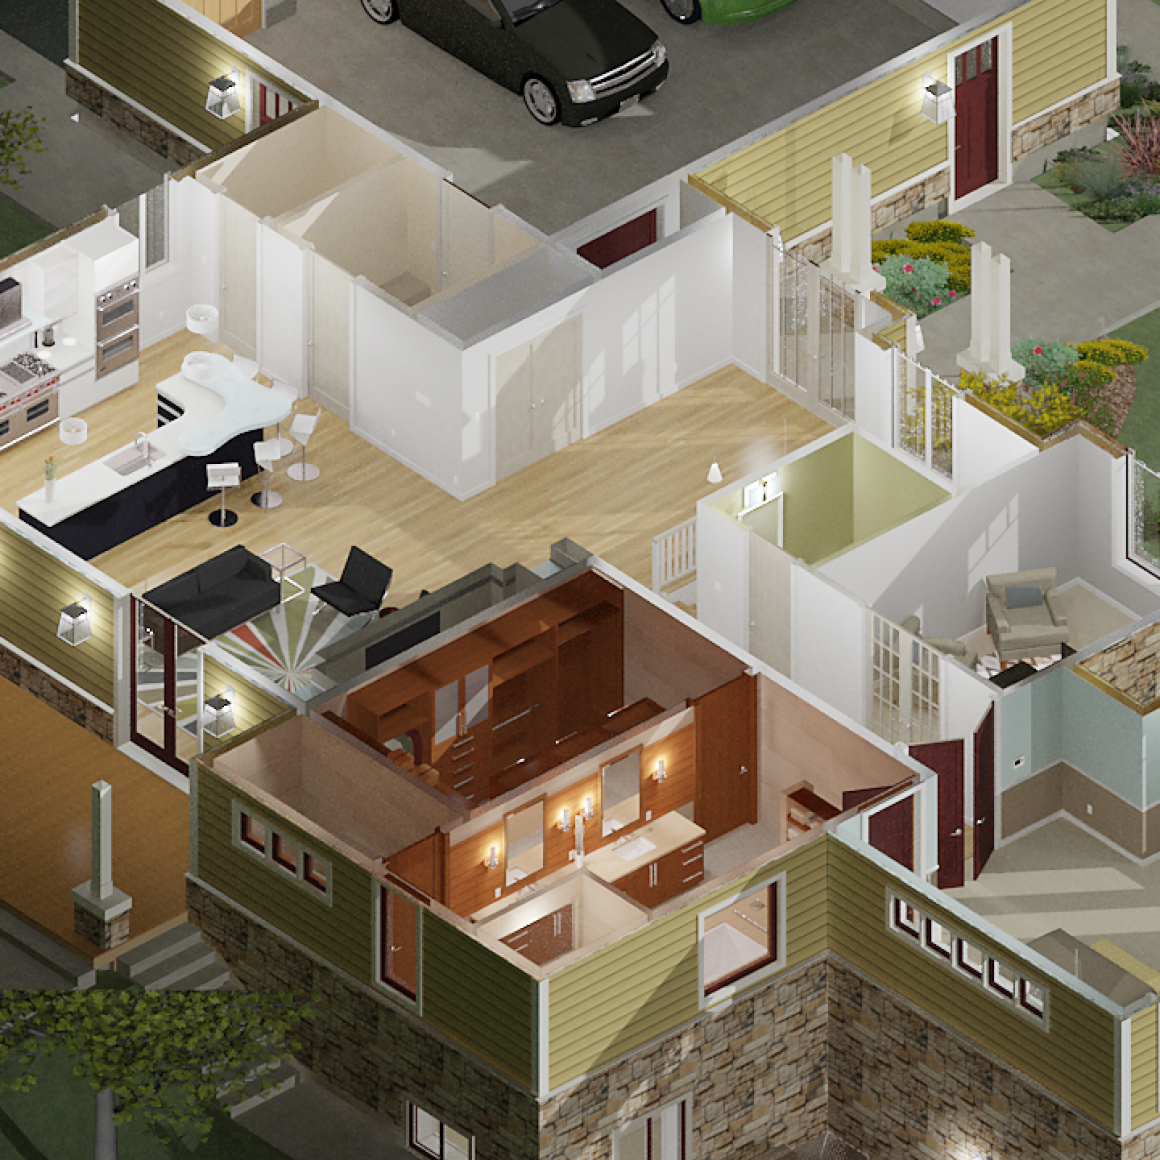 riverstone_DOLLHOUSE01